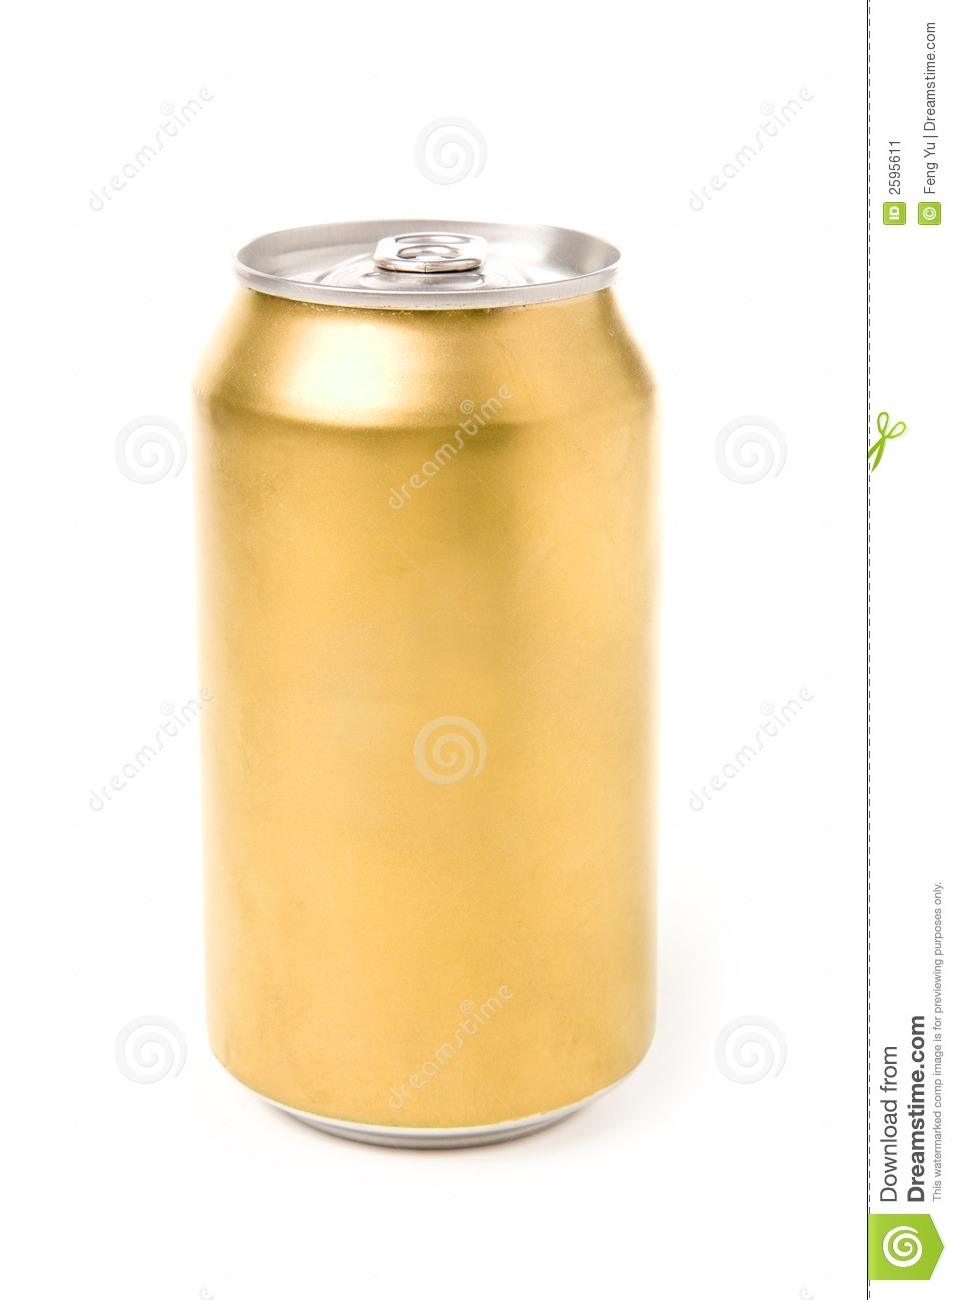 Blank Soda Can Stock Image - Image: 2595611